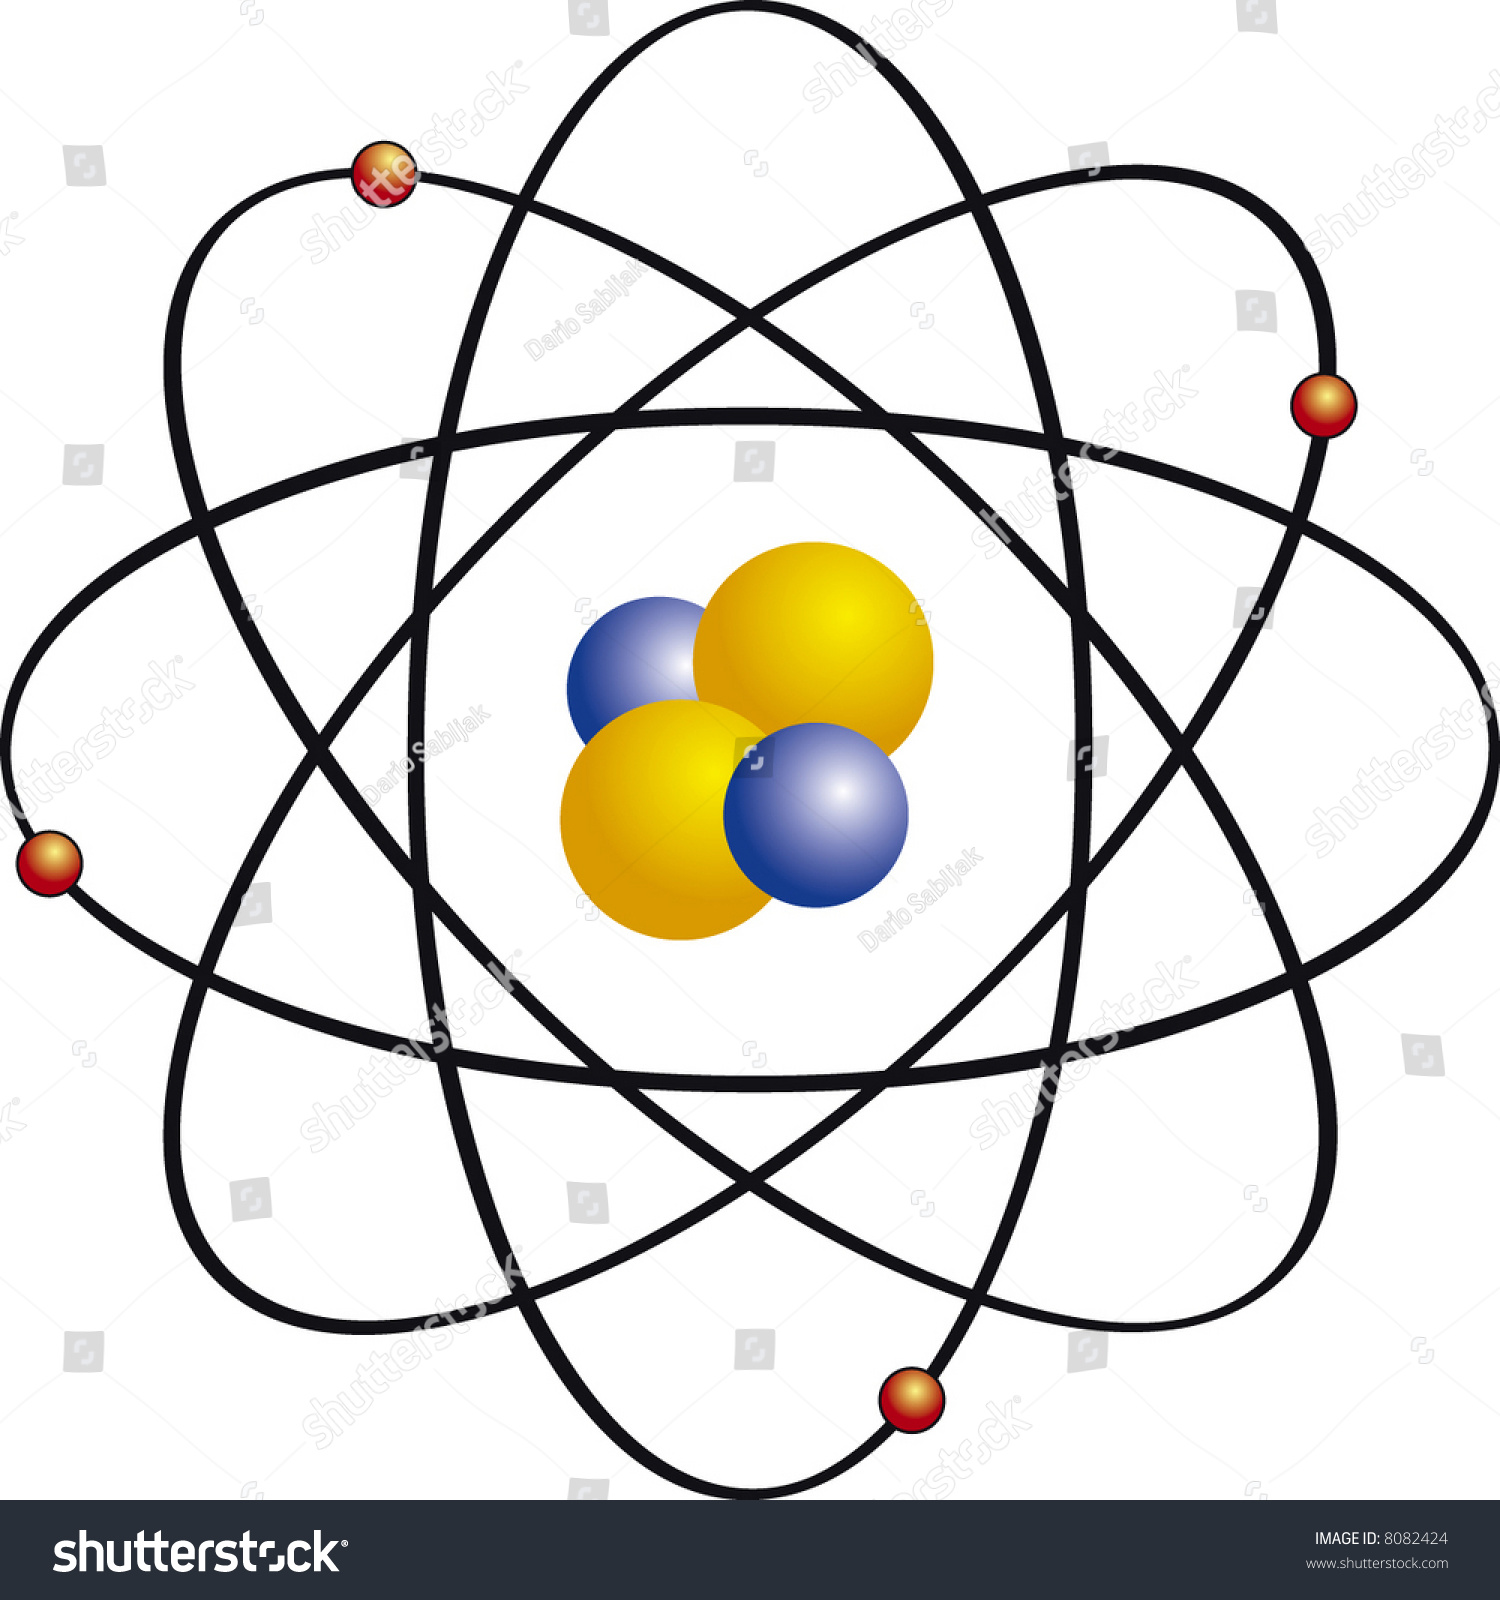 Simple Explanation of orbitals - Chemistry Stack Exchange